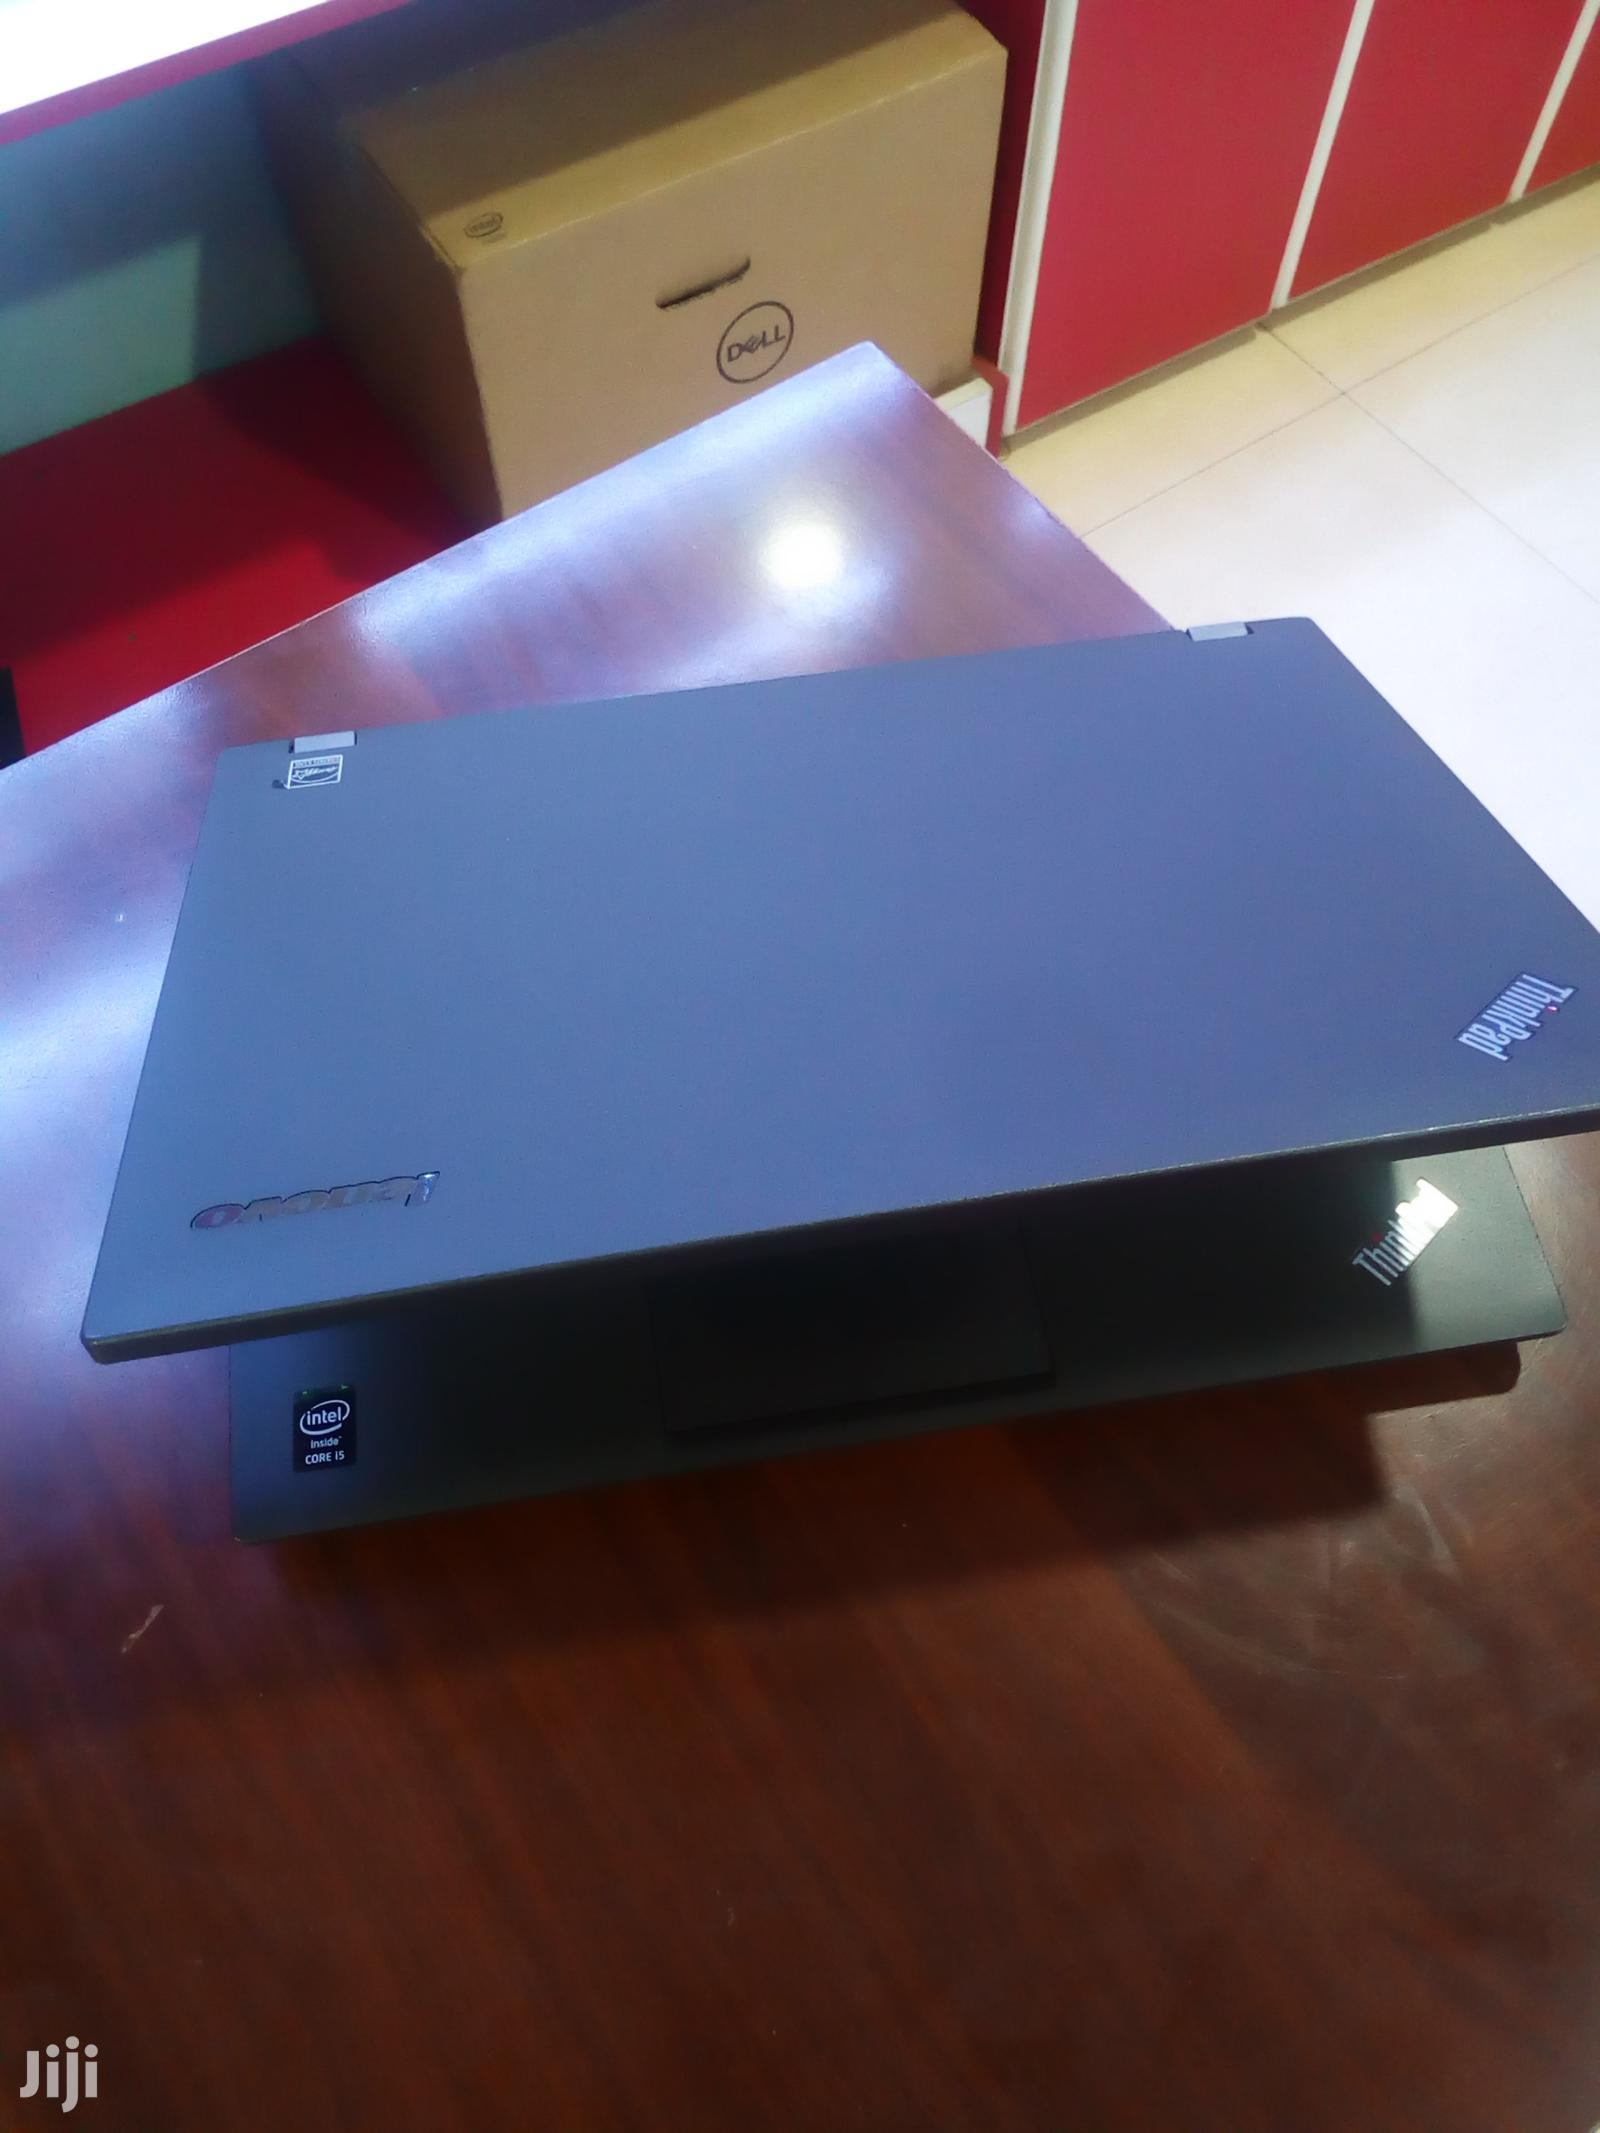 Laptop Lenovo ThinkPad L440 4GB Intel Core i5 500GB | Laptops & Computers for sale in Kampala, Central Region, Uganda